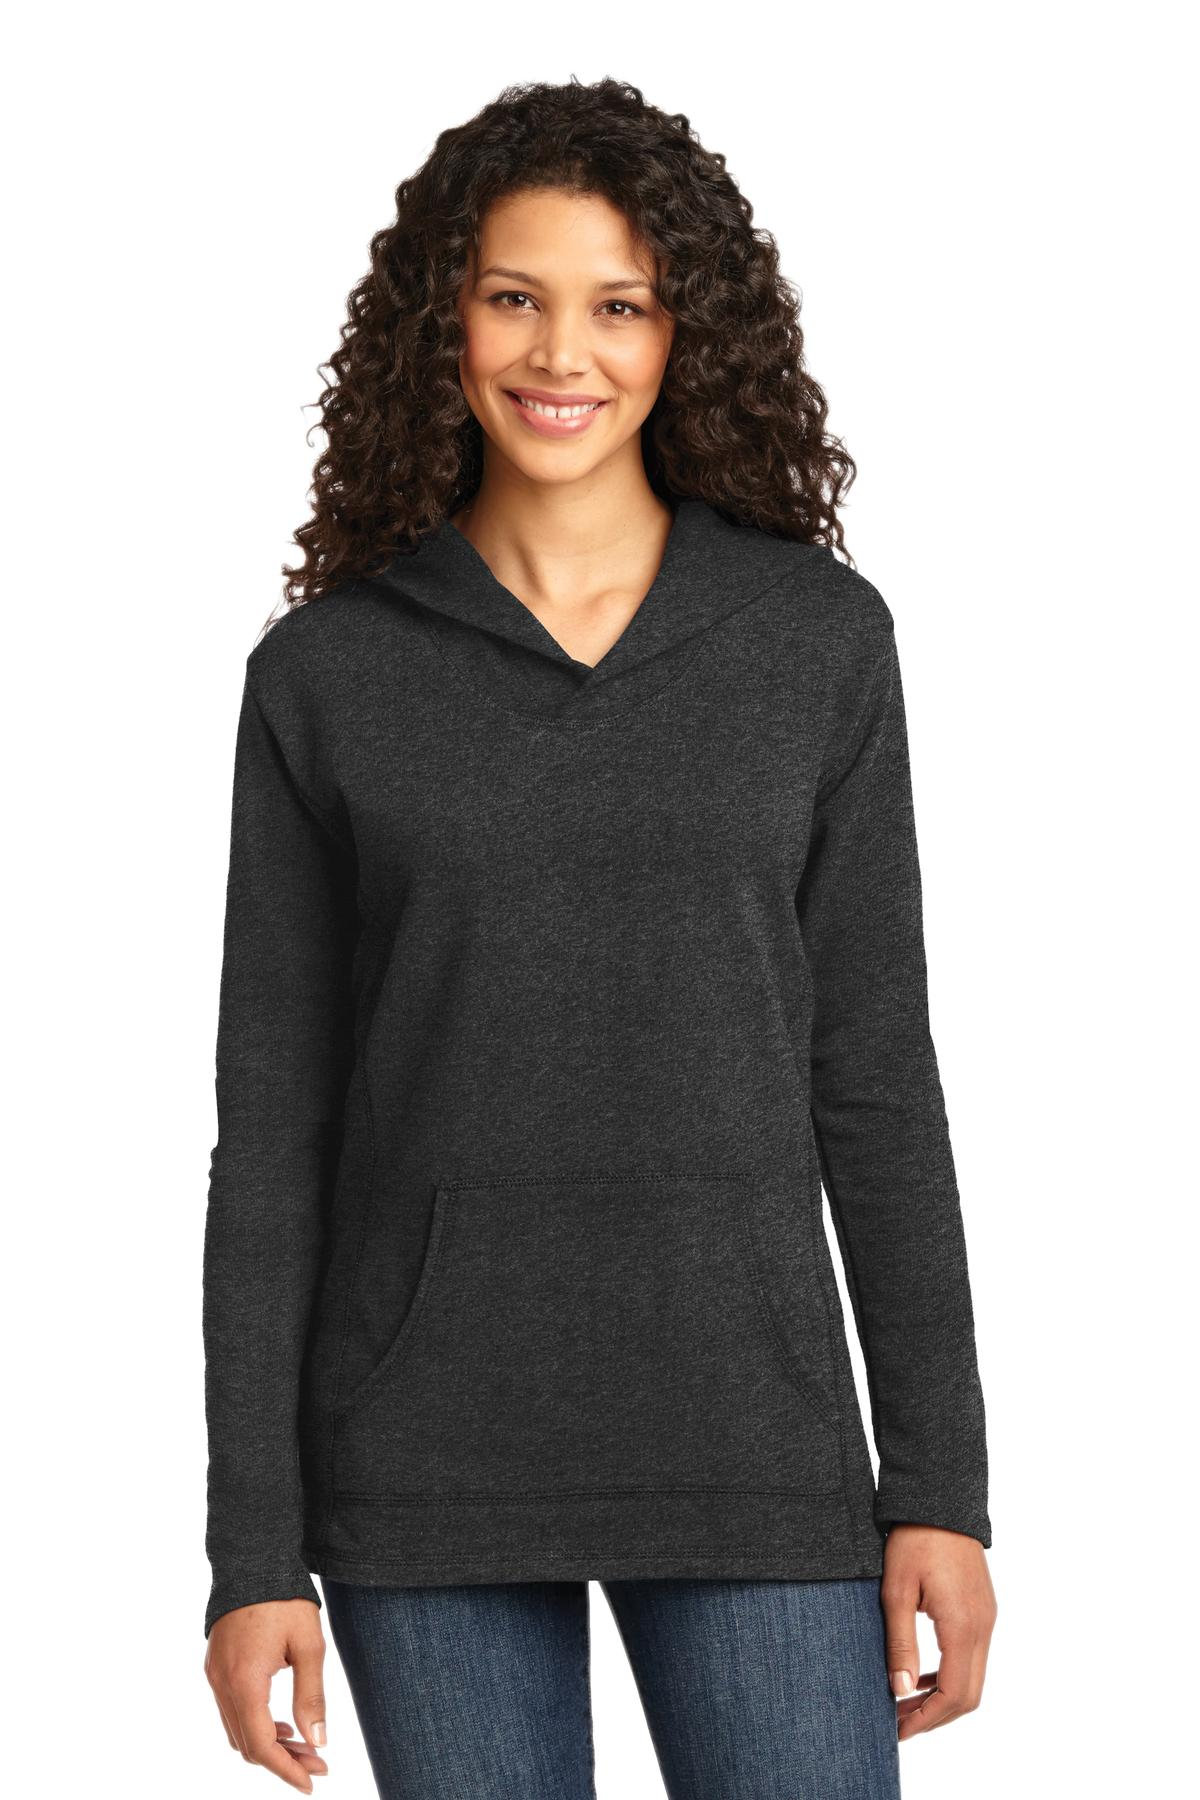 Anvil ®  Ladies French Terry Pullover Hooded Sweatshirt. 72500L - Heather Dark Grey